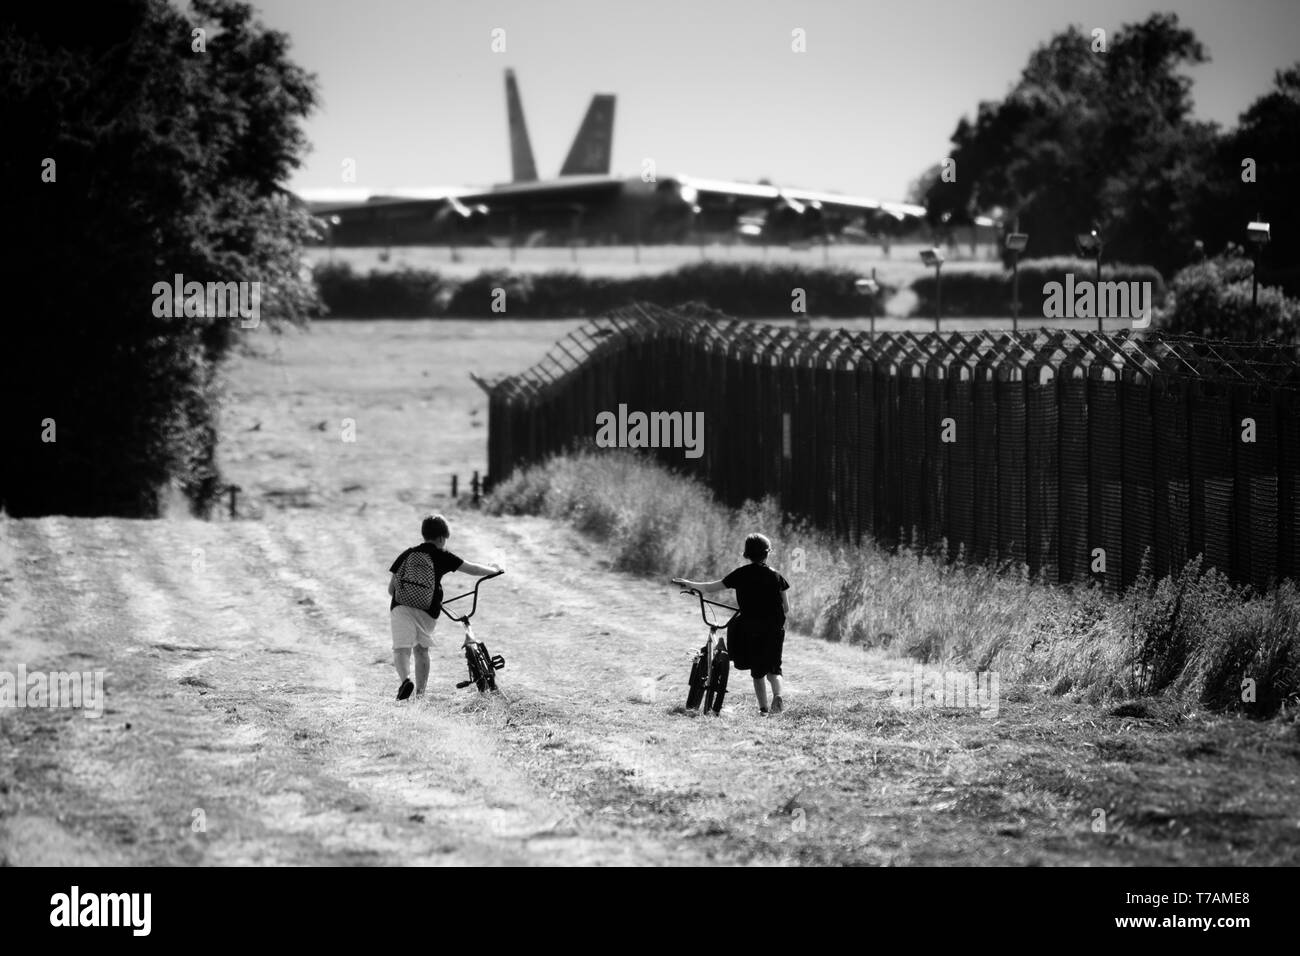 Two children going out to see the bombers after school - Stock Image